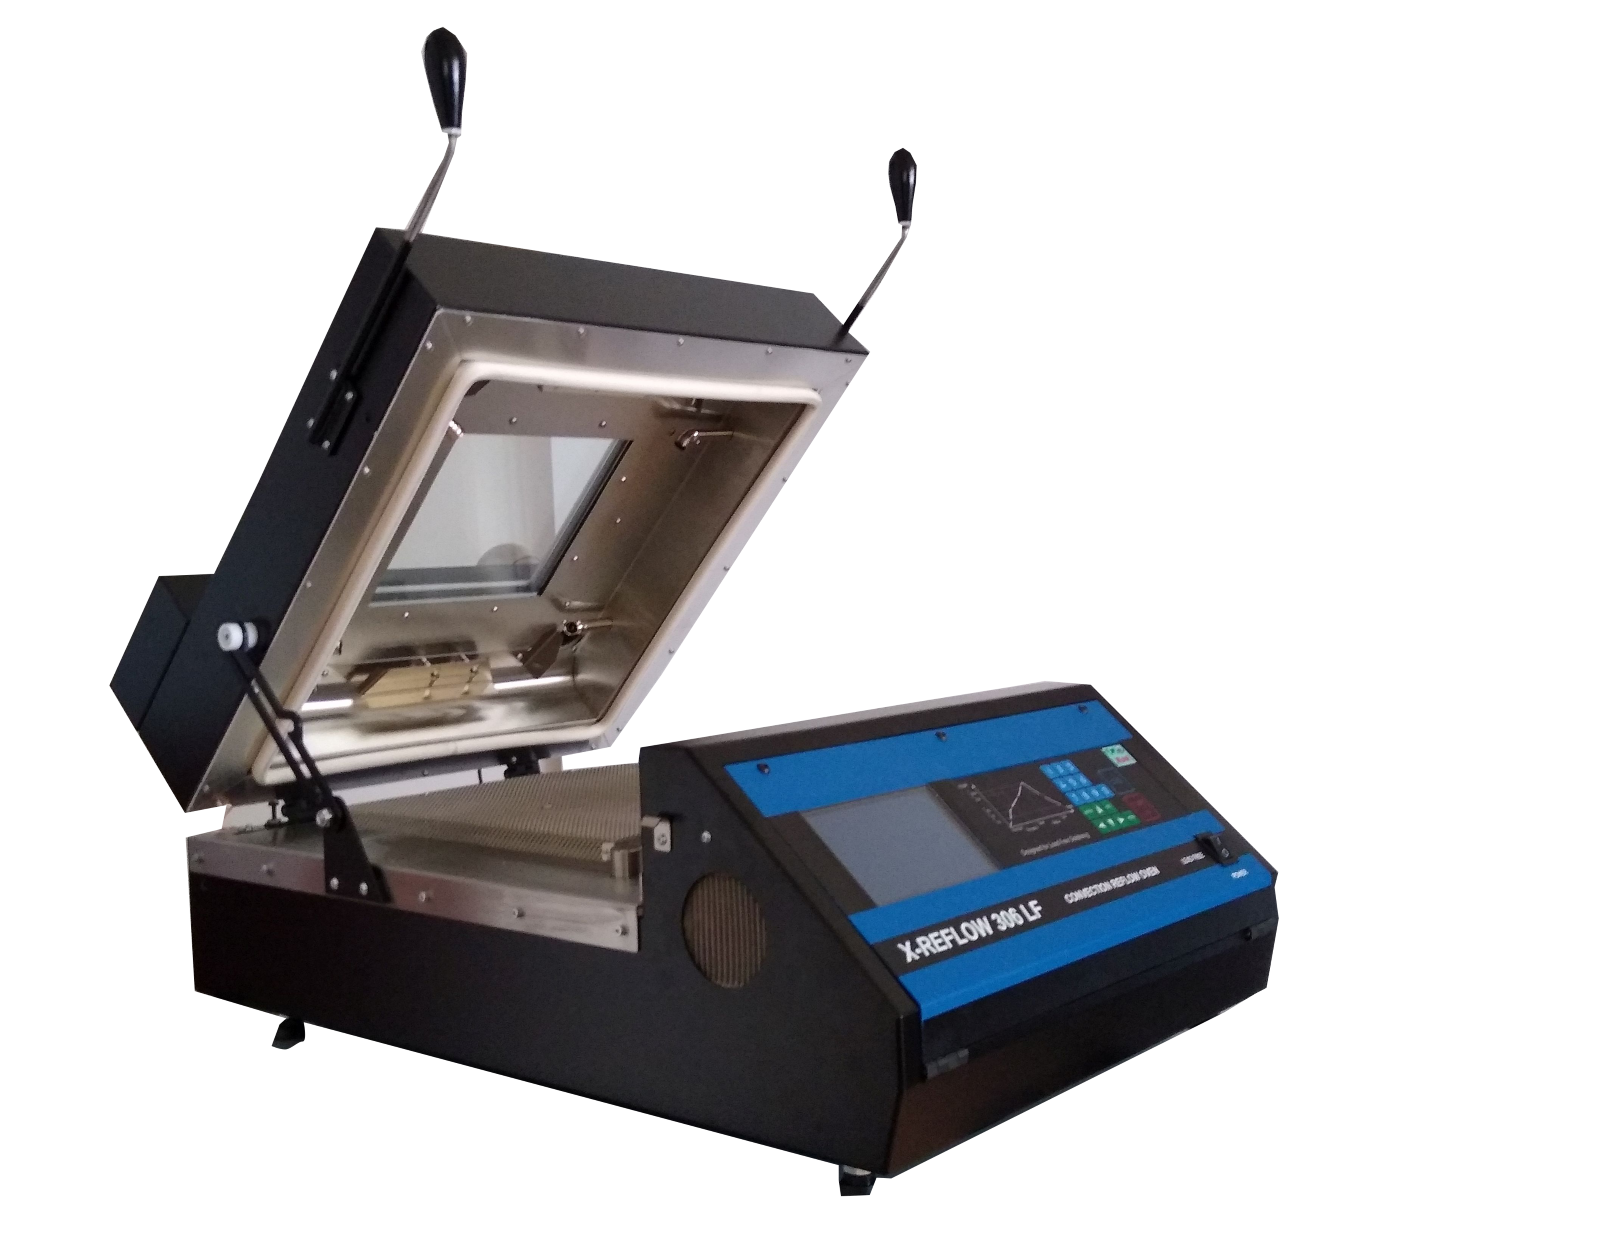 X-Reflow-306-S Oven with top open